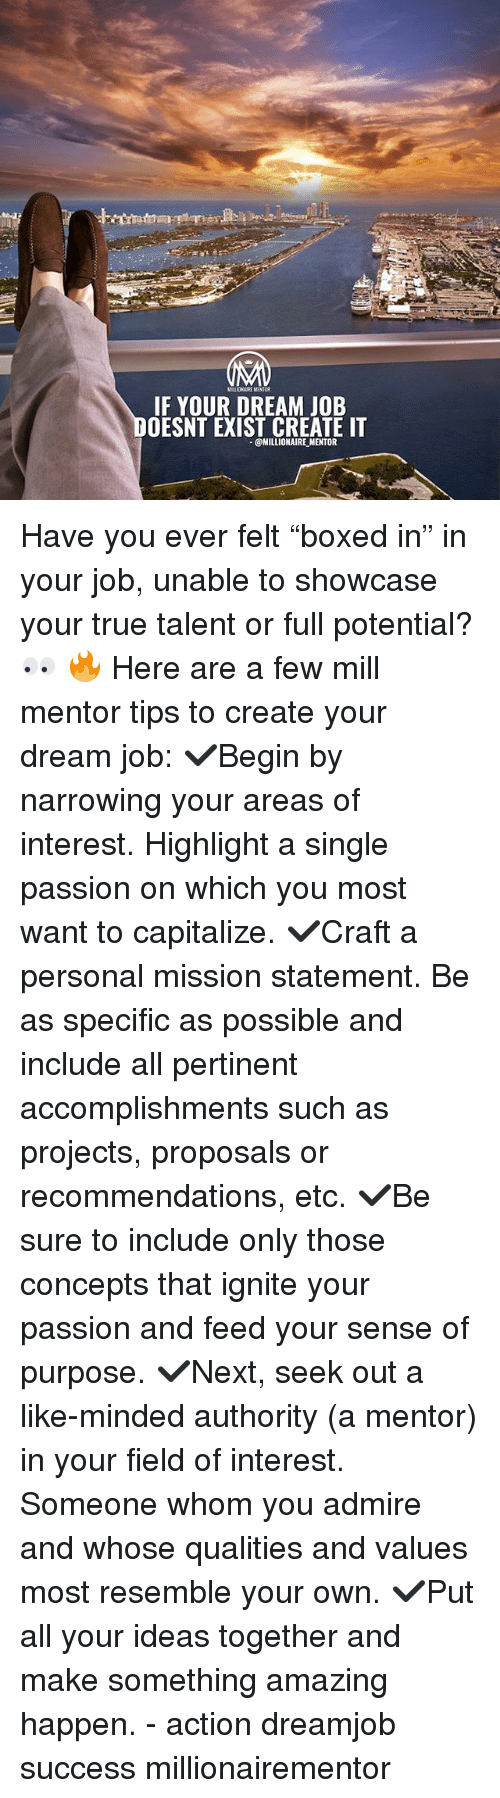 """ignite: MILLIONAIRE MENTOR  IF YOUR DREAM JOB  OESNT EXIST CREATE IT  @MILLIONAIRE MENTOR Have you ever felt """"boxed in"""" in your job, unable to showcase your true talent or full potential? 👀 🔥 Here are a few mill mentor tips to create your dream job: ✔️Begin by narrowing your areas of interest. Highlight a single passion on which you most want to capitalize. ✔️Craft a personal mission statement. Be as specific as possible and include all pertinent accomplishments such as projects, proposals or recommendations, etc. ✔️Be sure to include only those concepts that ignite your passion and feed your sense of purpose. ✔️Next, seek out a like-minded authority (a mentor) in your field of interest. Someone whom you admire and whose qualities and values most resemble your own. ✔️Put all your ideas together and make something amazing happen. - action dreamjob success millionairementor"""